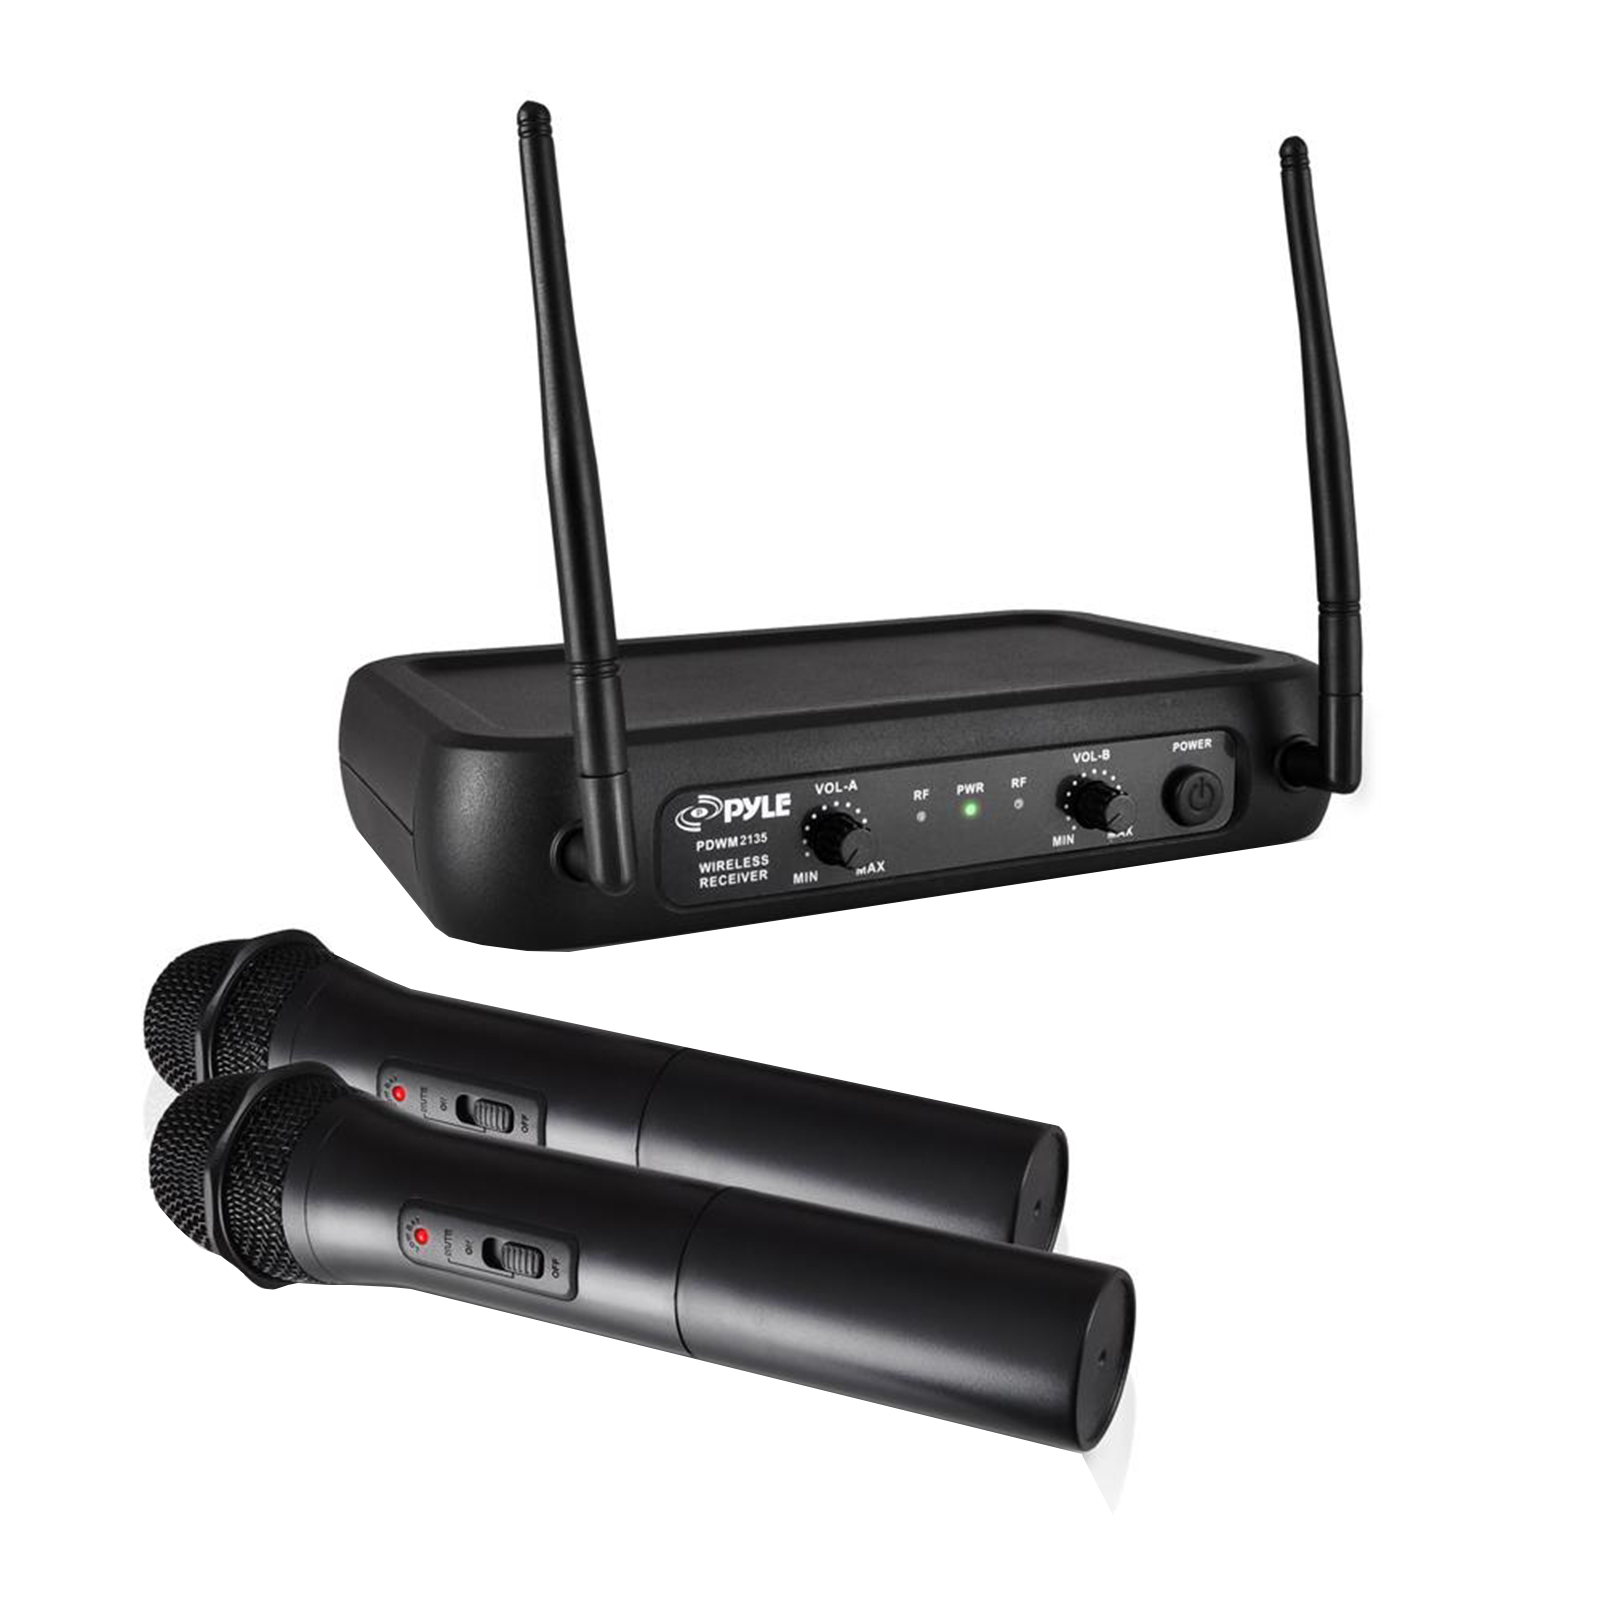 VHF Fixed Frequency Cordless Microphone System, Adjustable Volume Controls, Includes (2) Handheld Mics